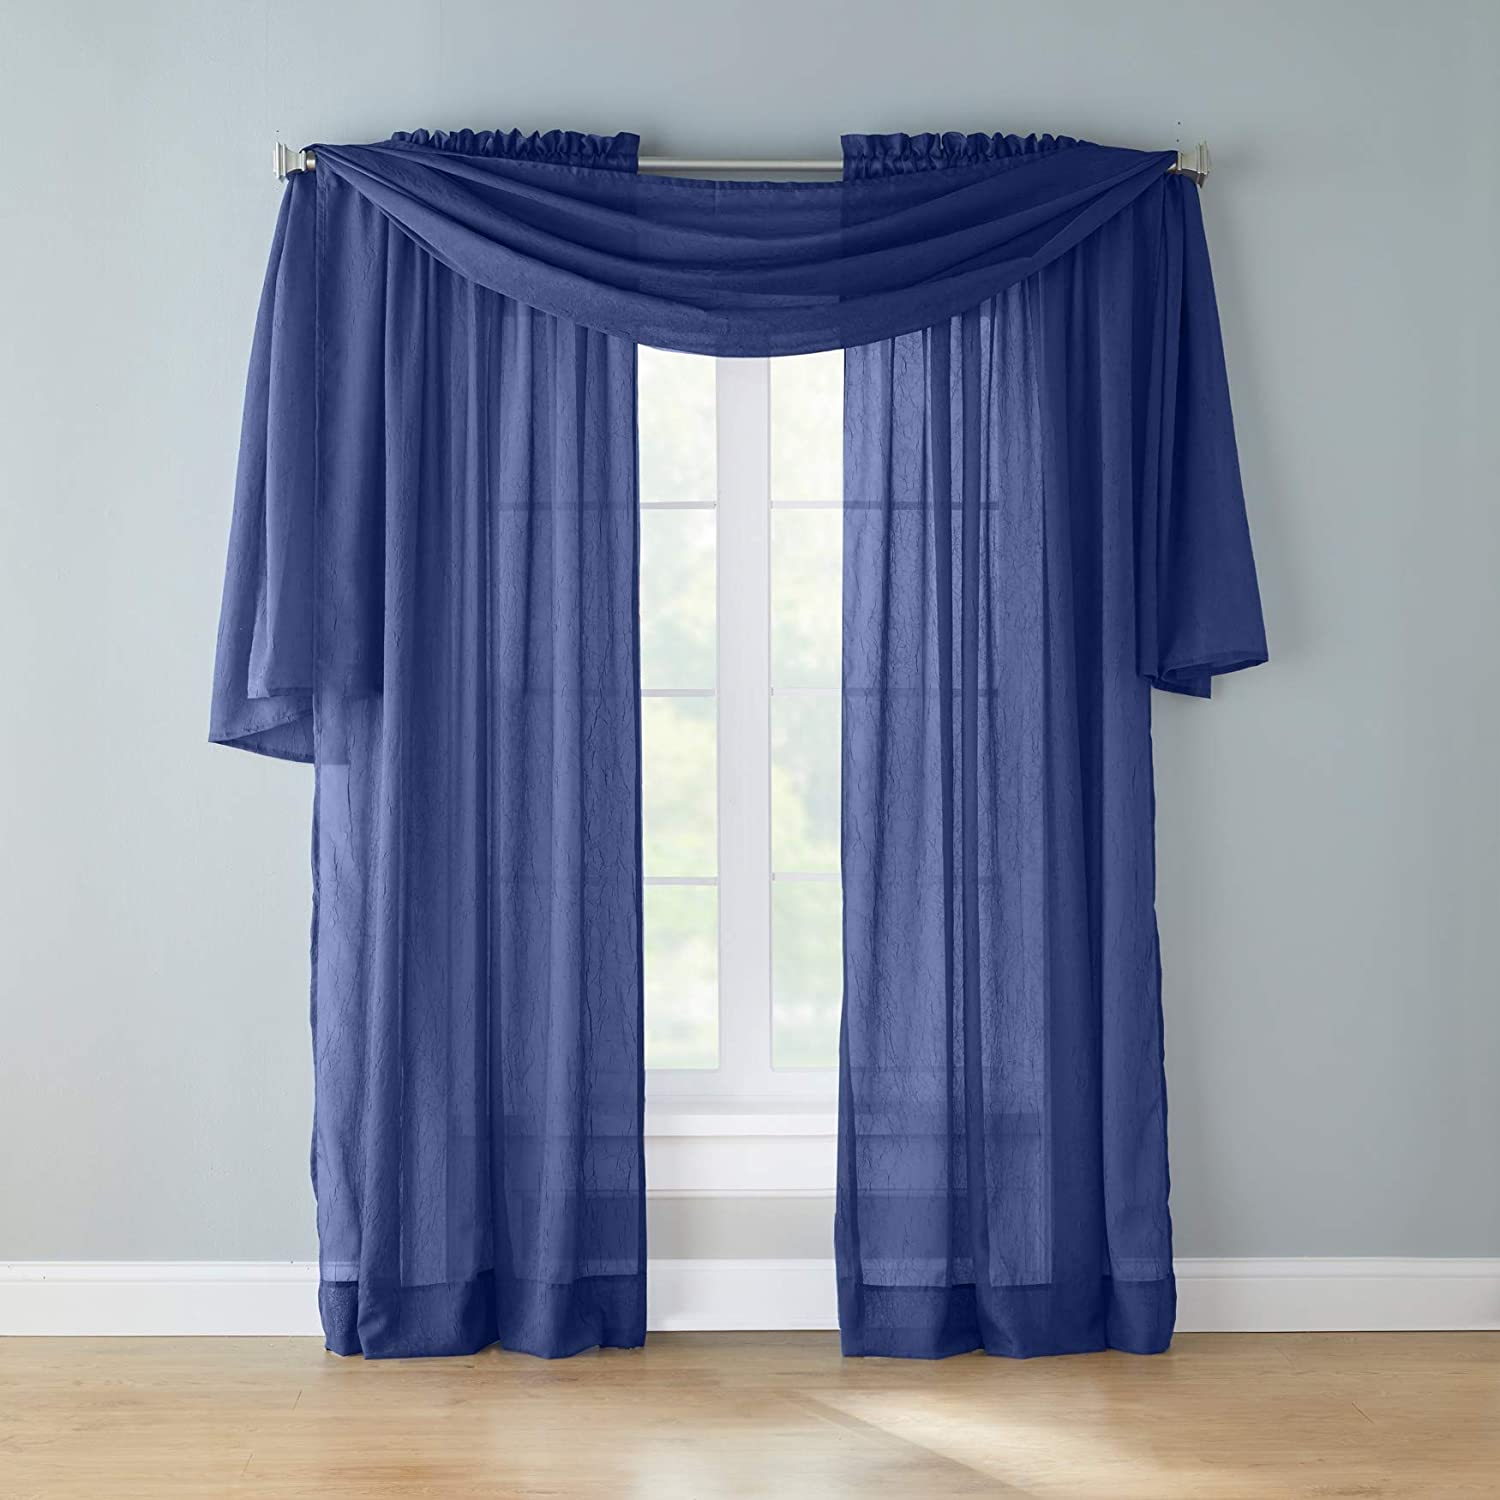 Amazon Com Brylanehome Crushed Voile Scarf Valance Blue Home Kitchen